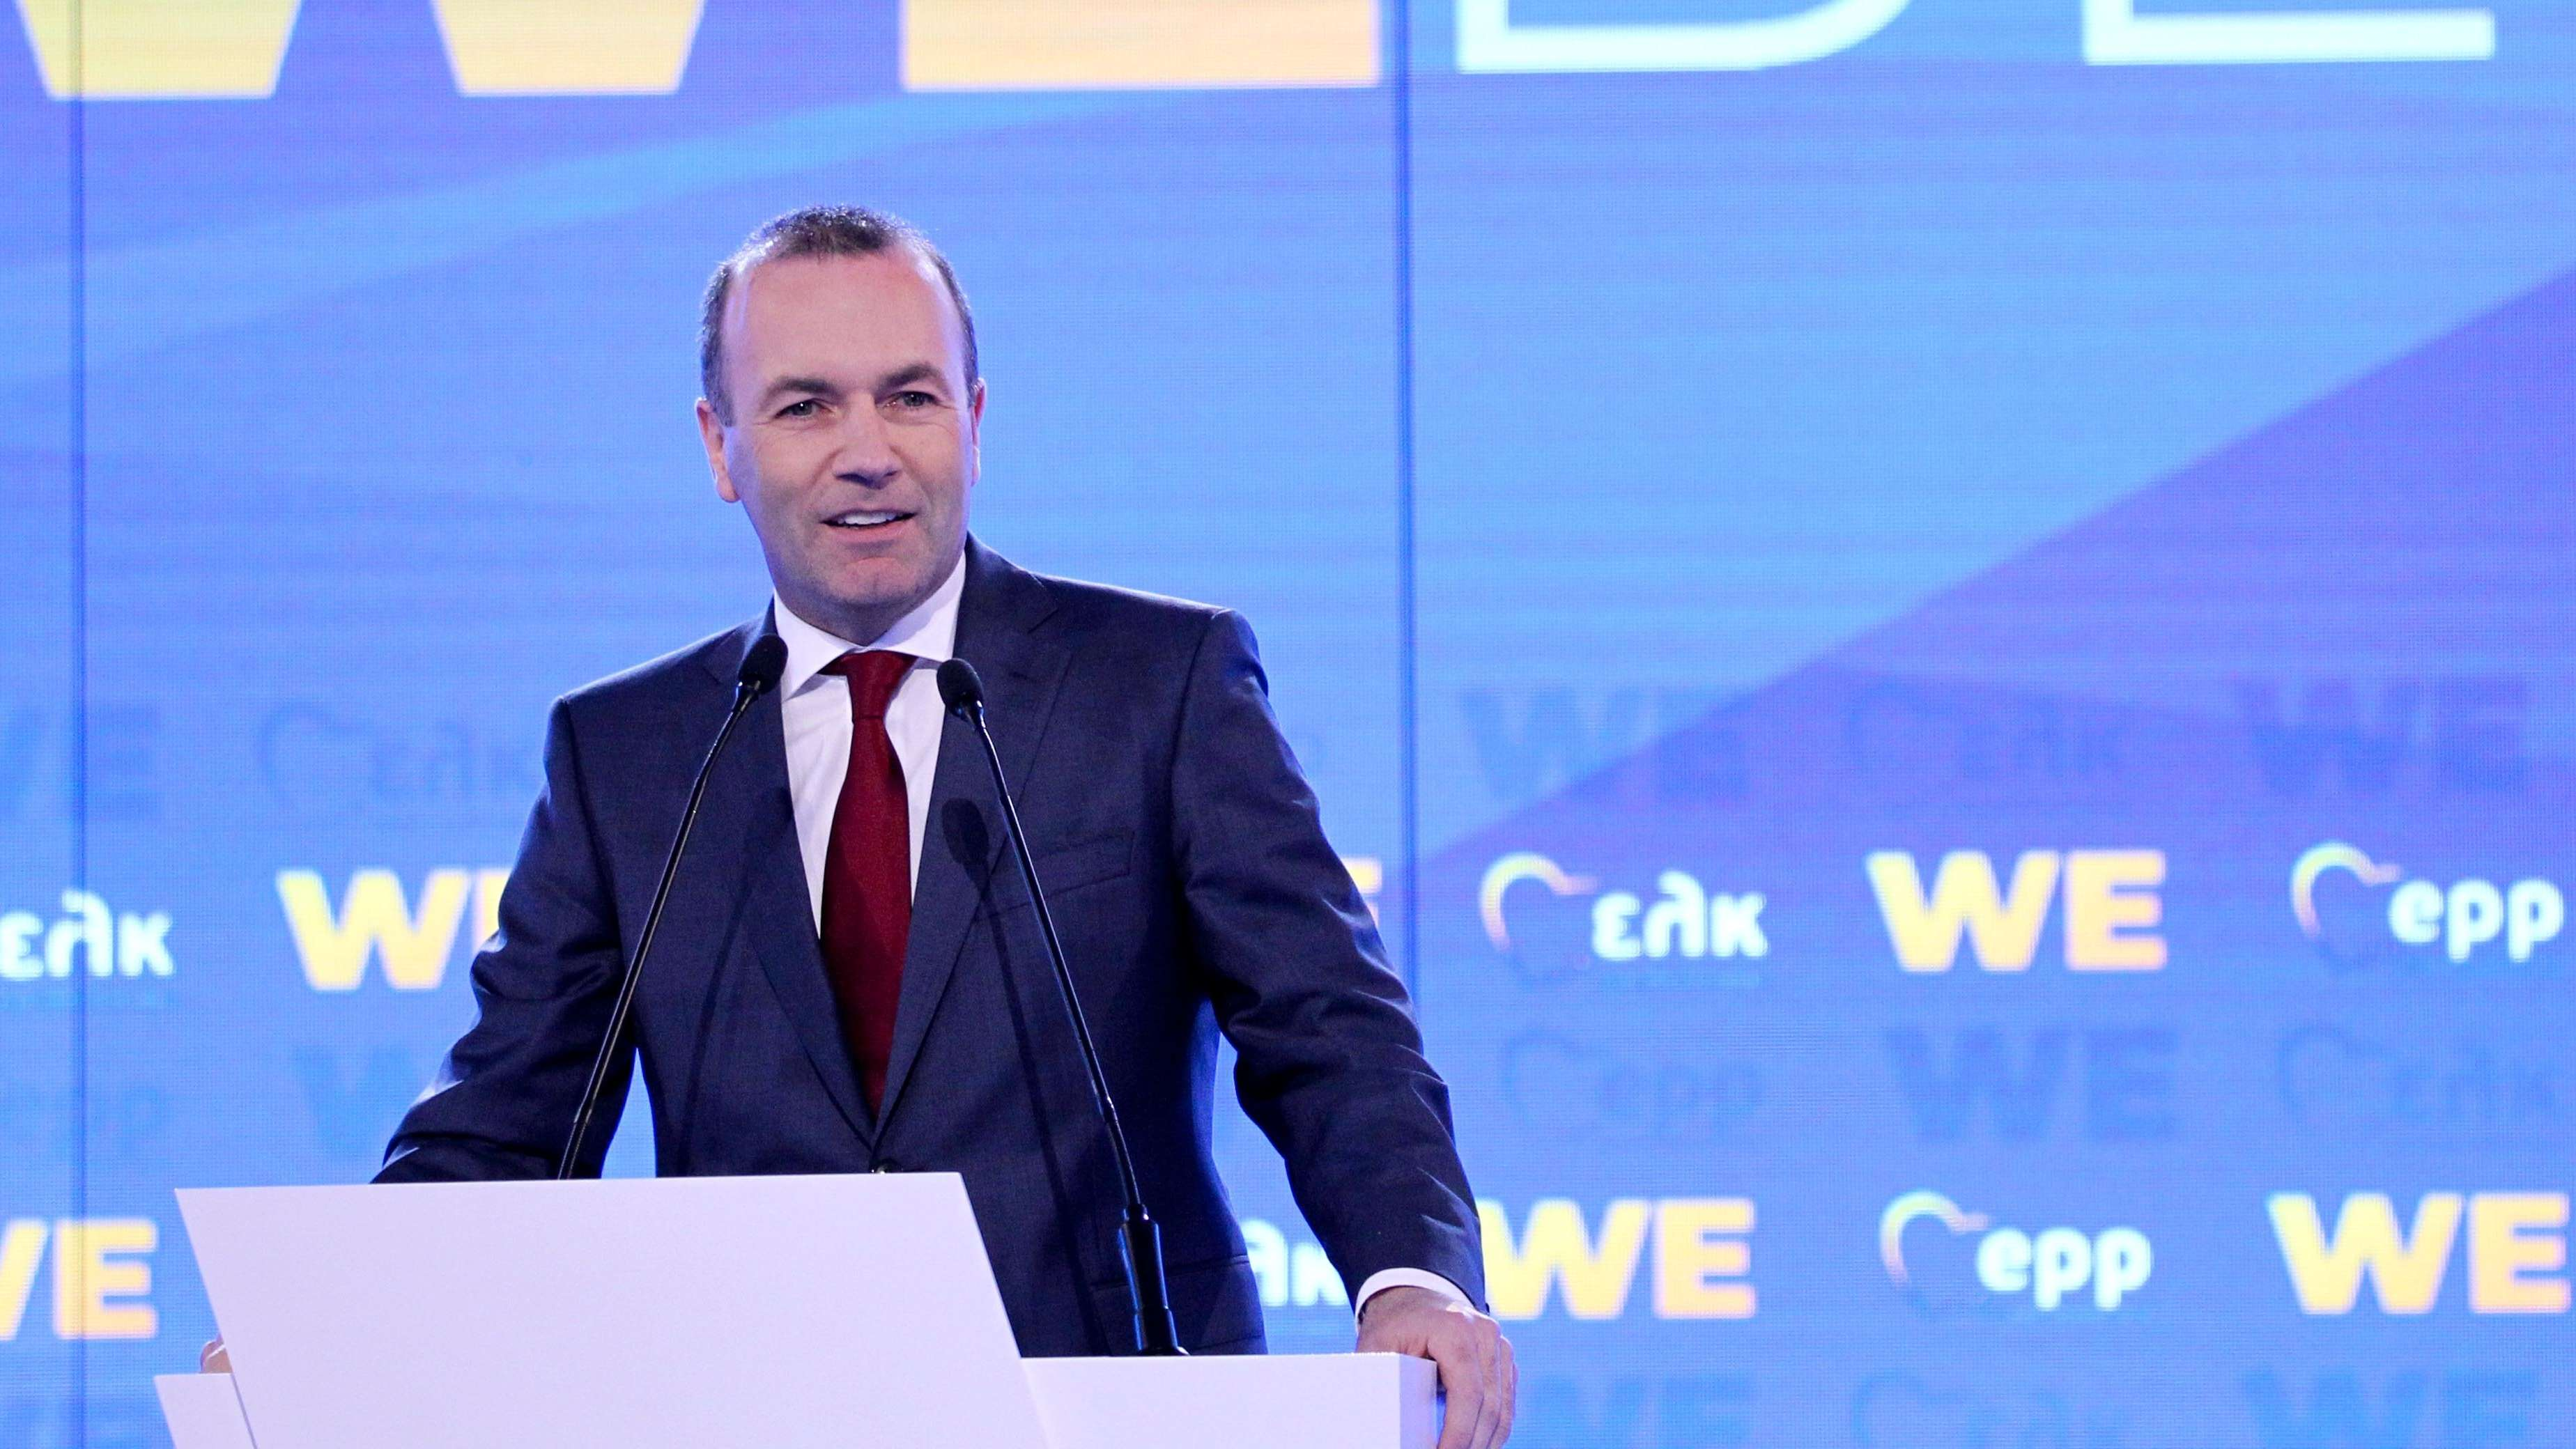 Manfred Weber in Athen